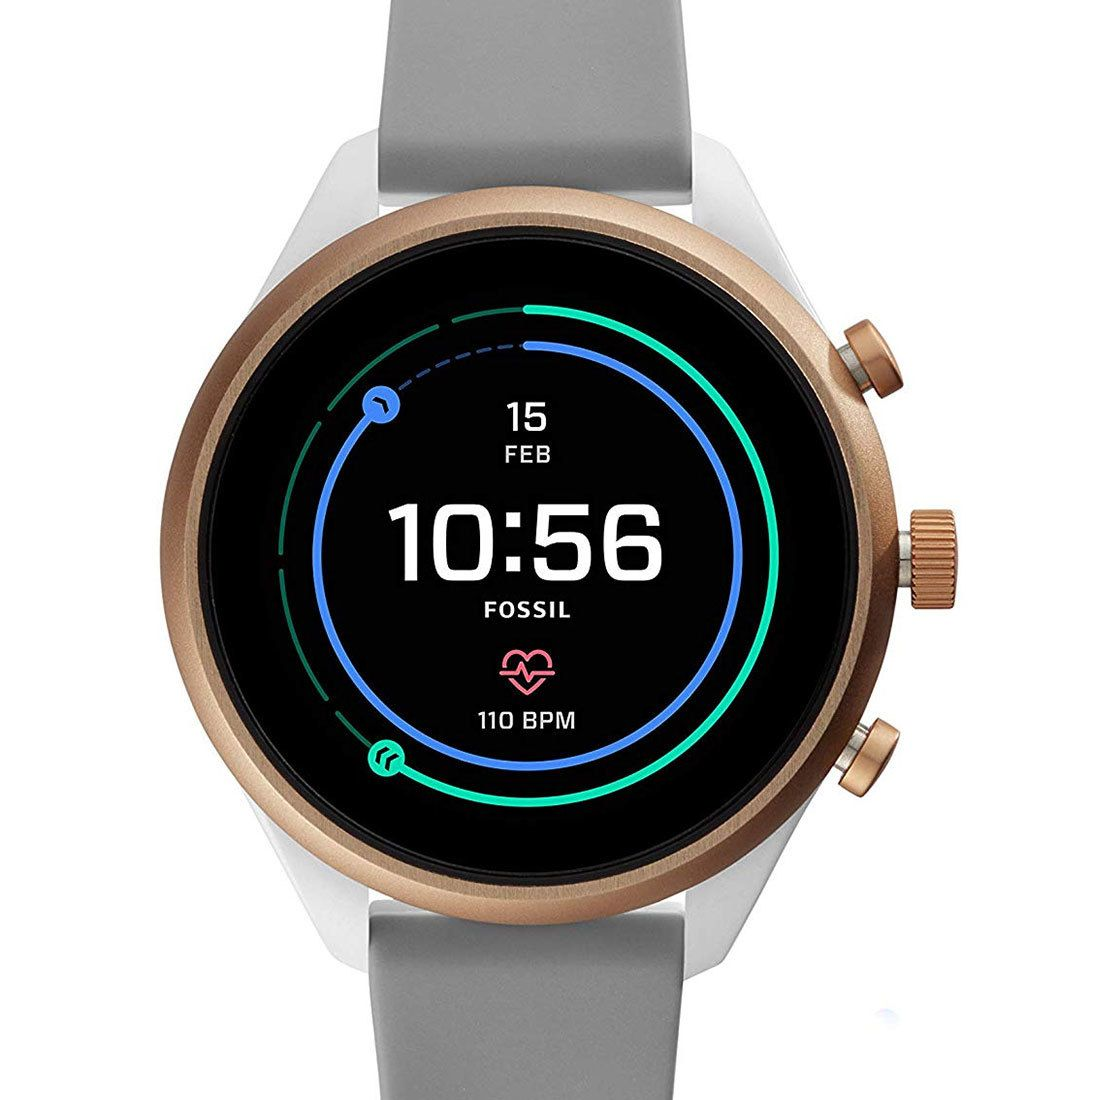 Fossil Sports Ladies Smartwatch FTW6025 (BACKORDER) in